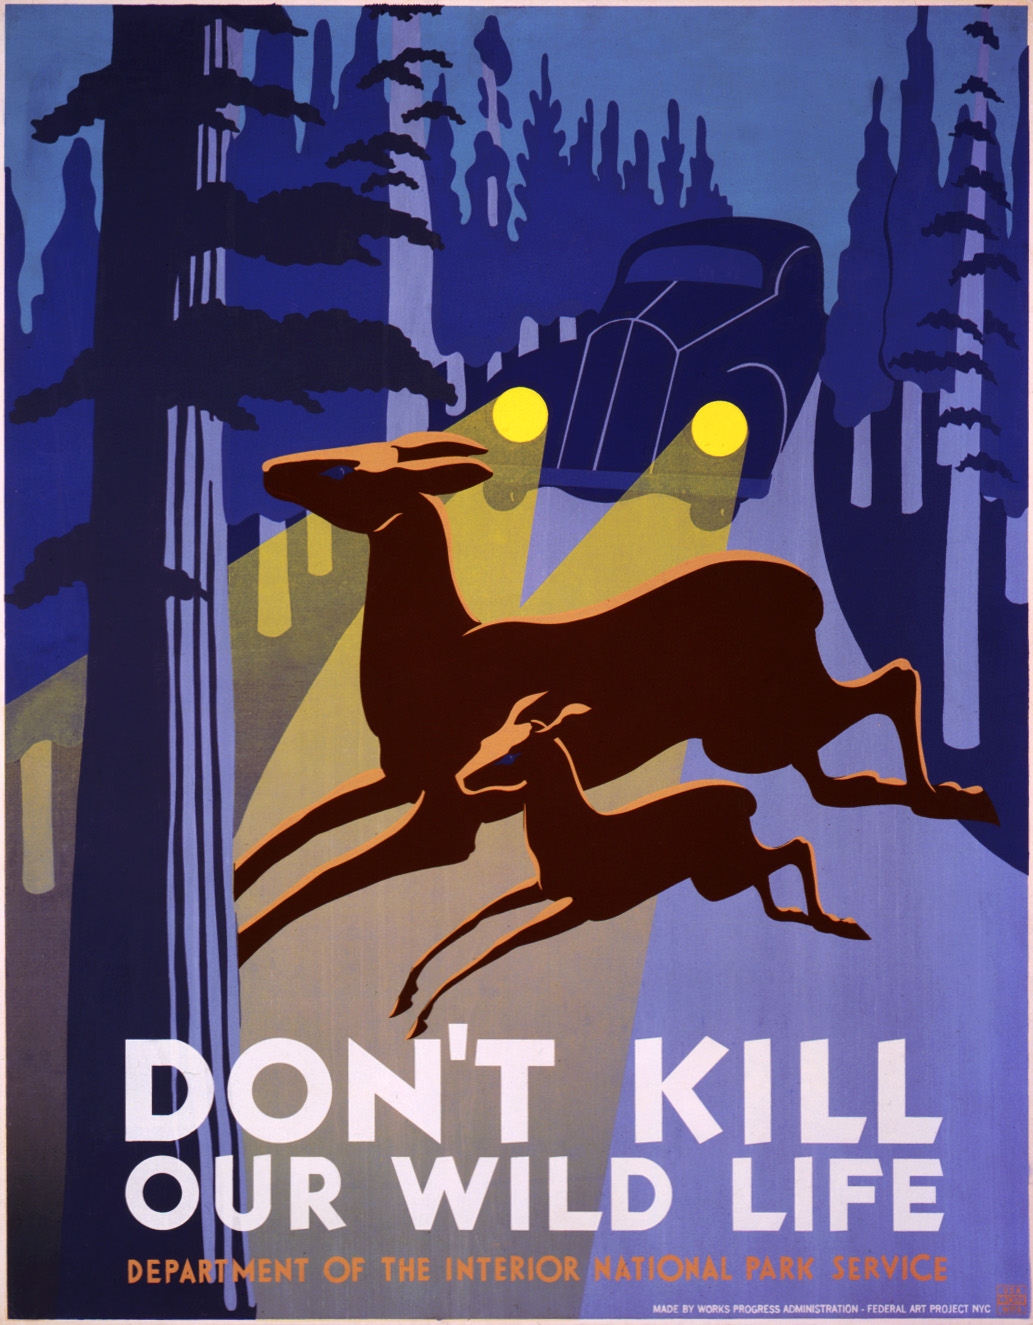 Poster design wikipedia - File Don T Kill Our Wild Life Wpa Poster 1936 40